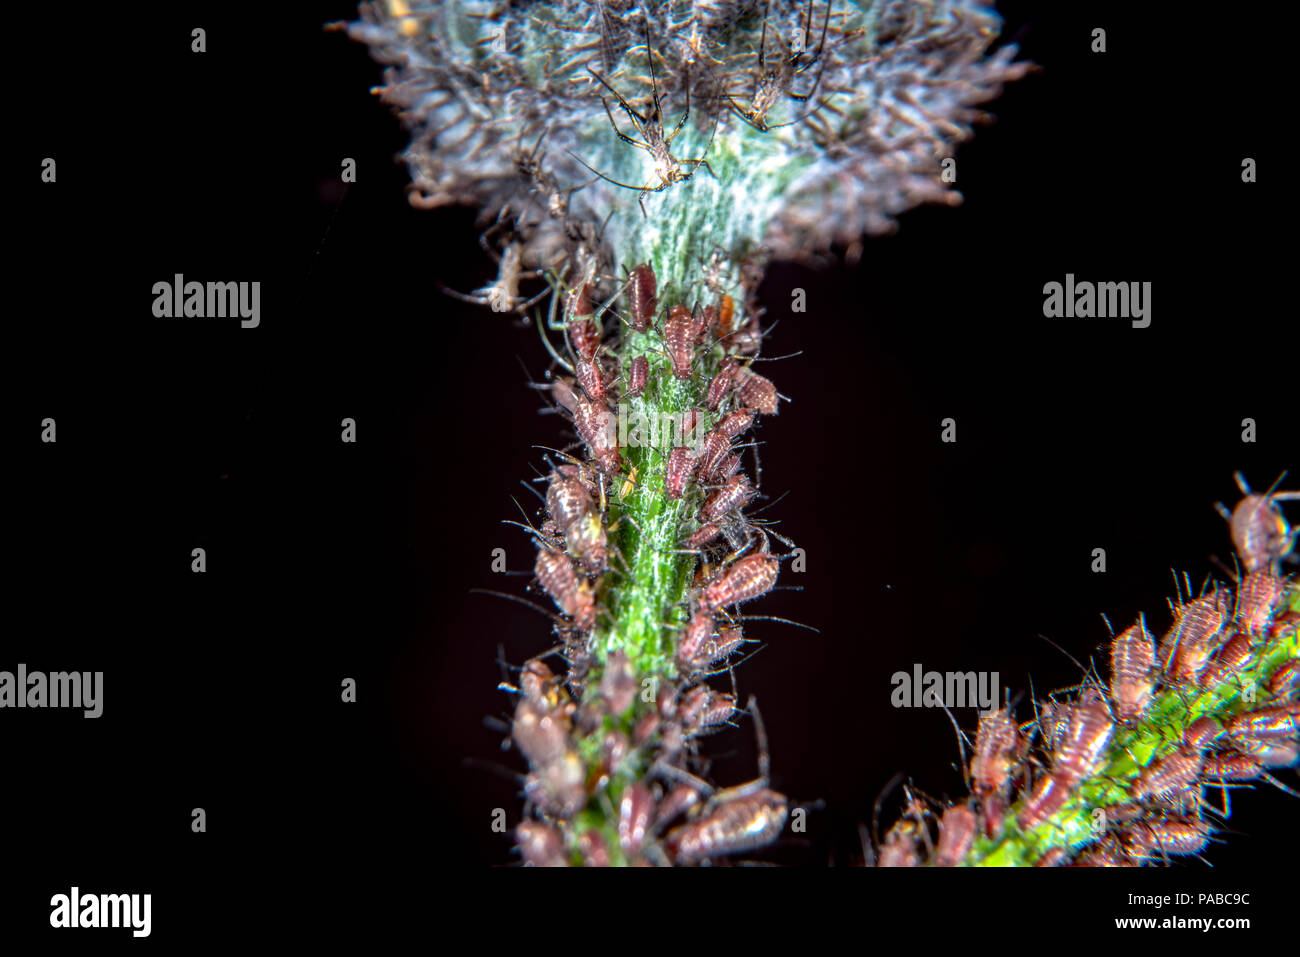 Aphids on a common thistle stem - Stock Image